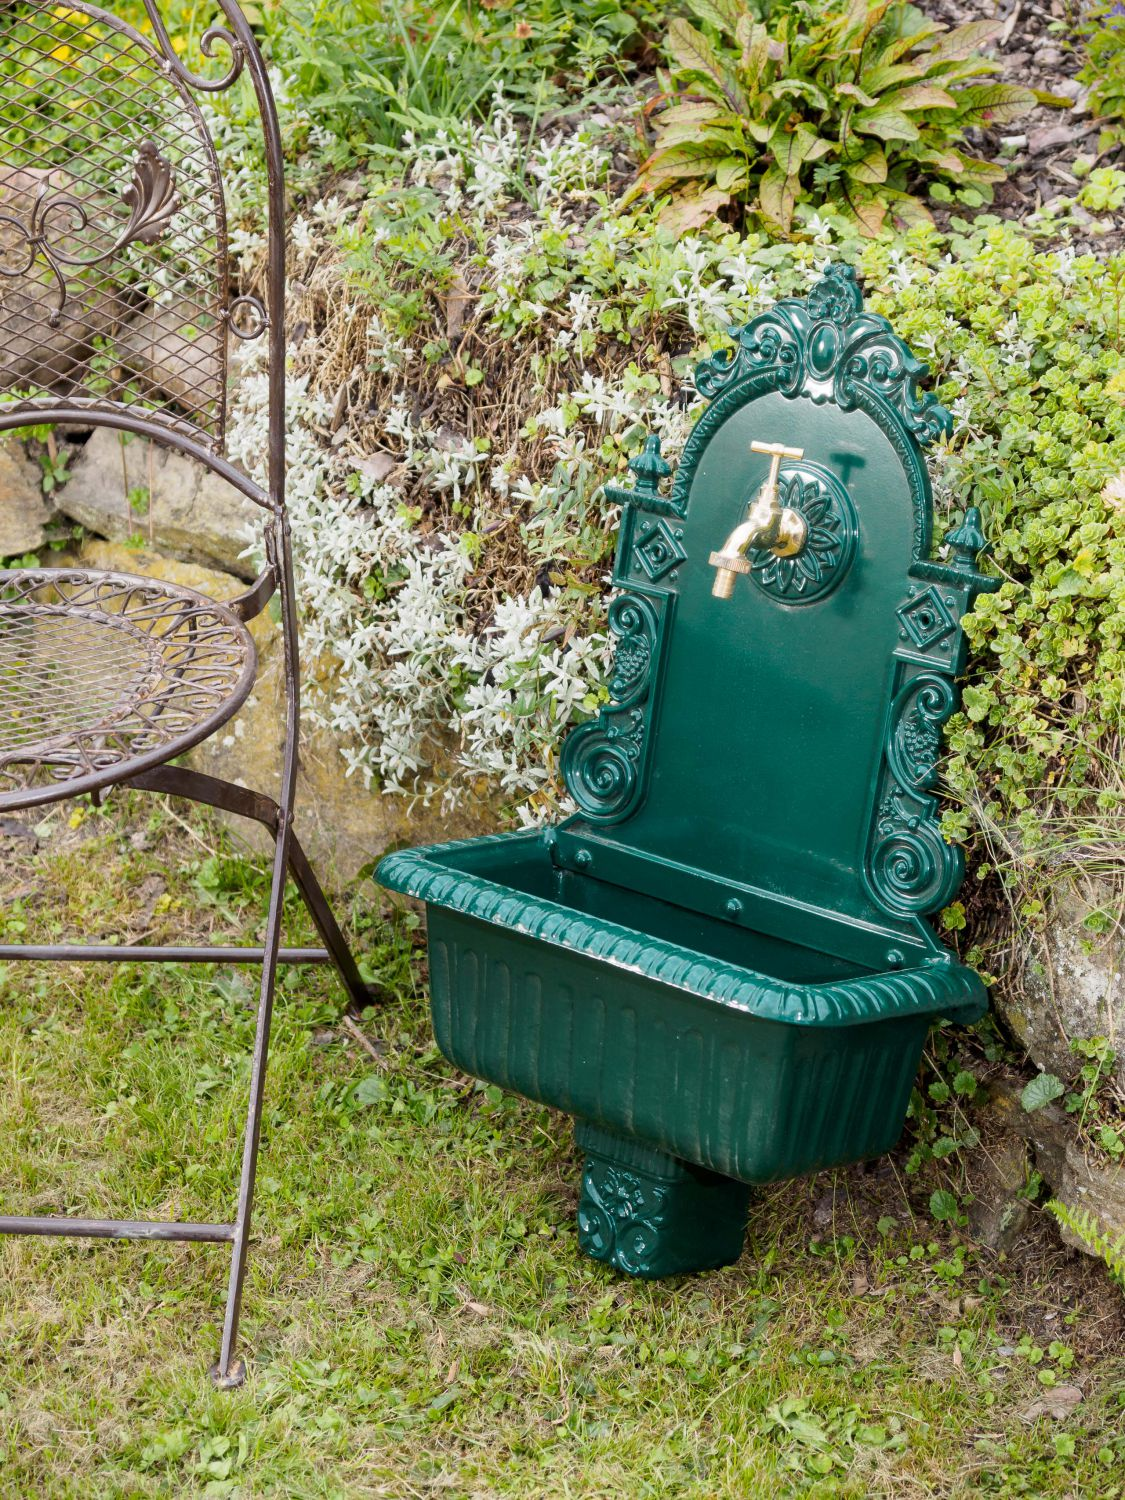 fontaine murale de jardin avec vasque style ancien aluminium vert ebay. Black Bedroom Furniture Sets. Home Design Ideas